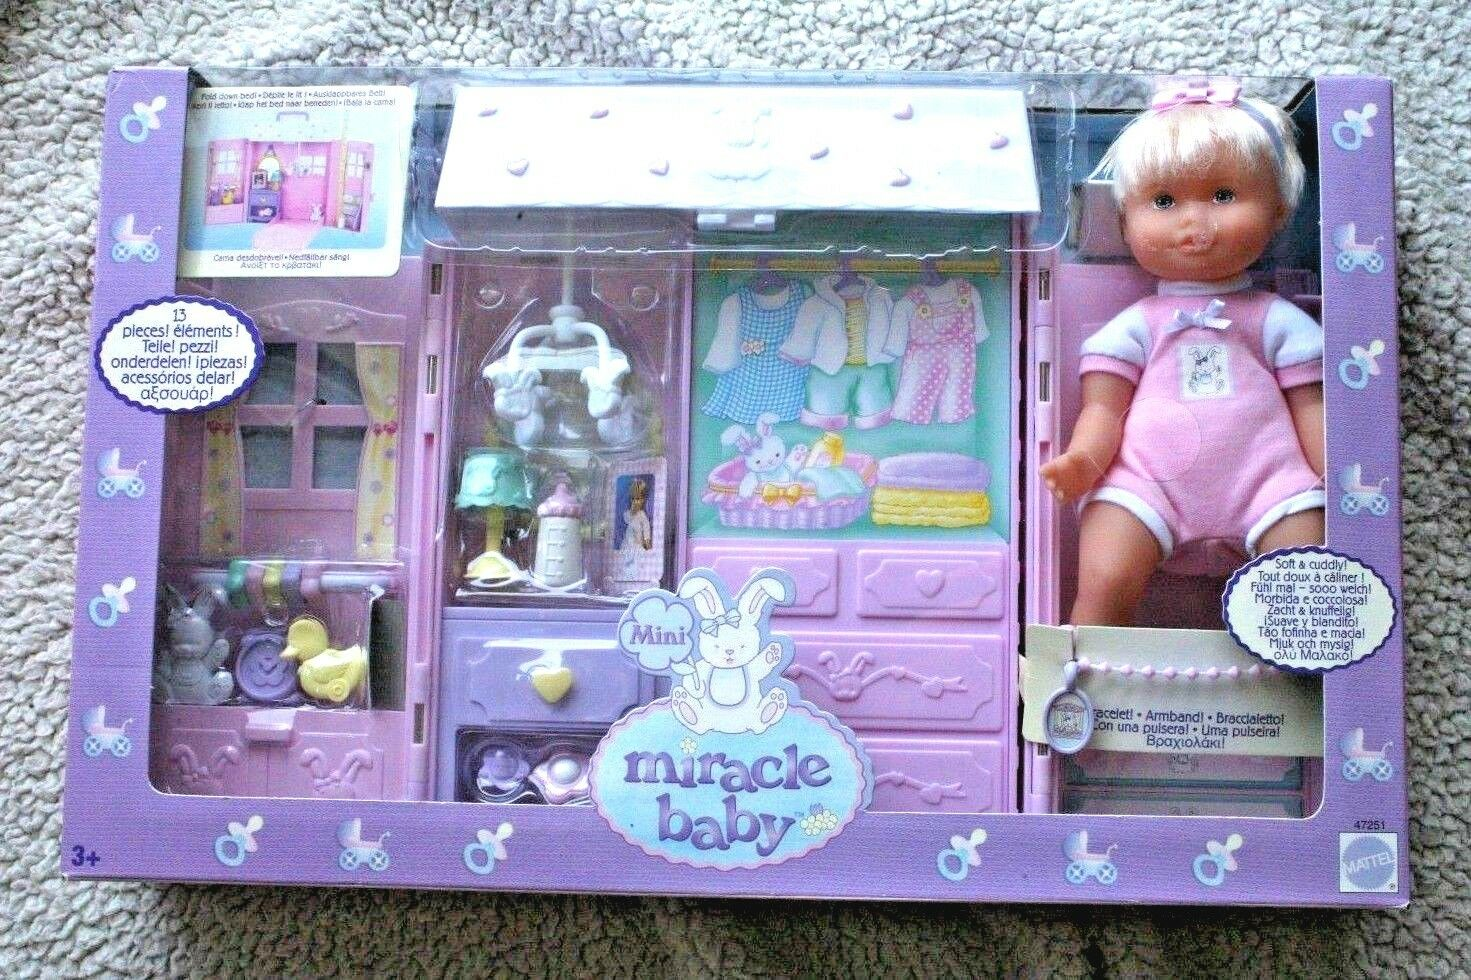 MINI MIRACLE BABY NURSERY (BEBÉ 21CMs). MATTEL 2002. NO BARBIE, BRAND NEW IN BOX